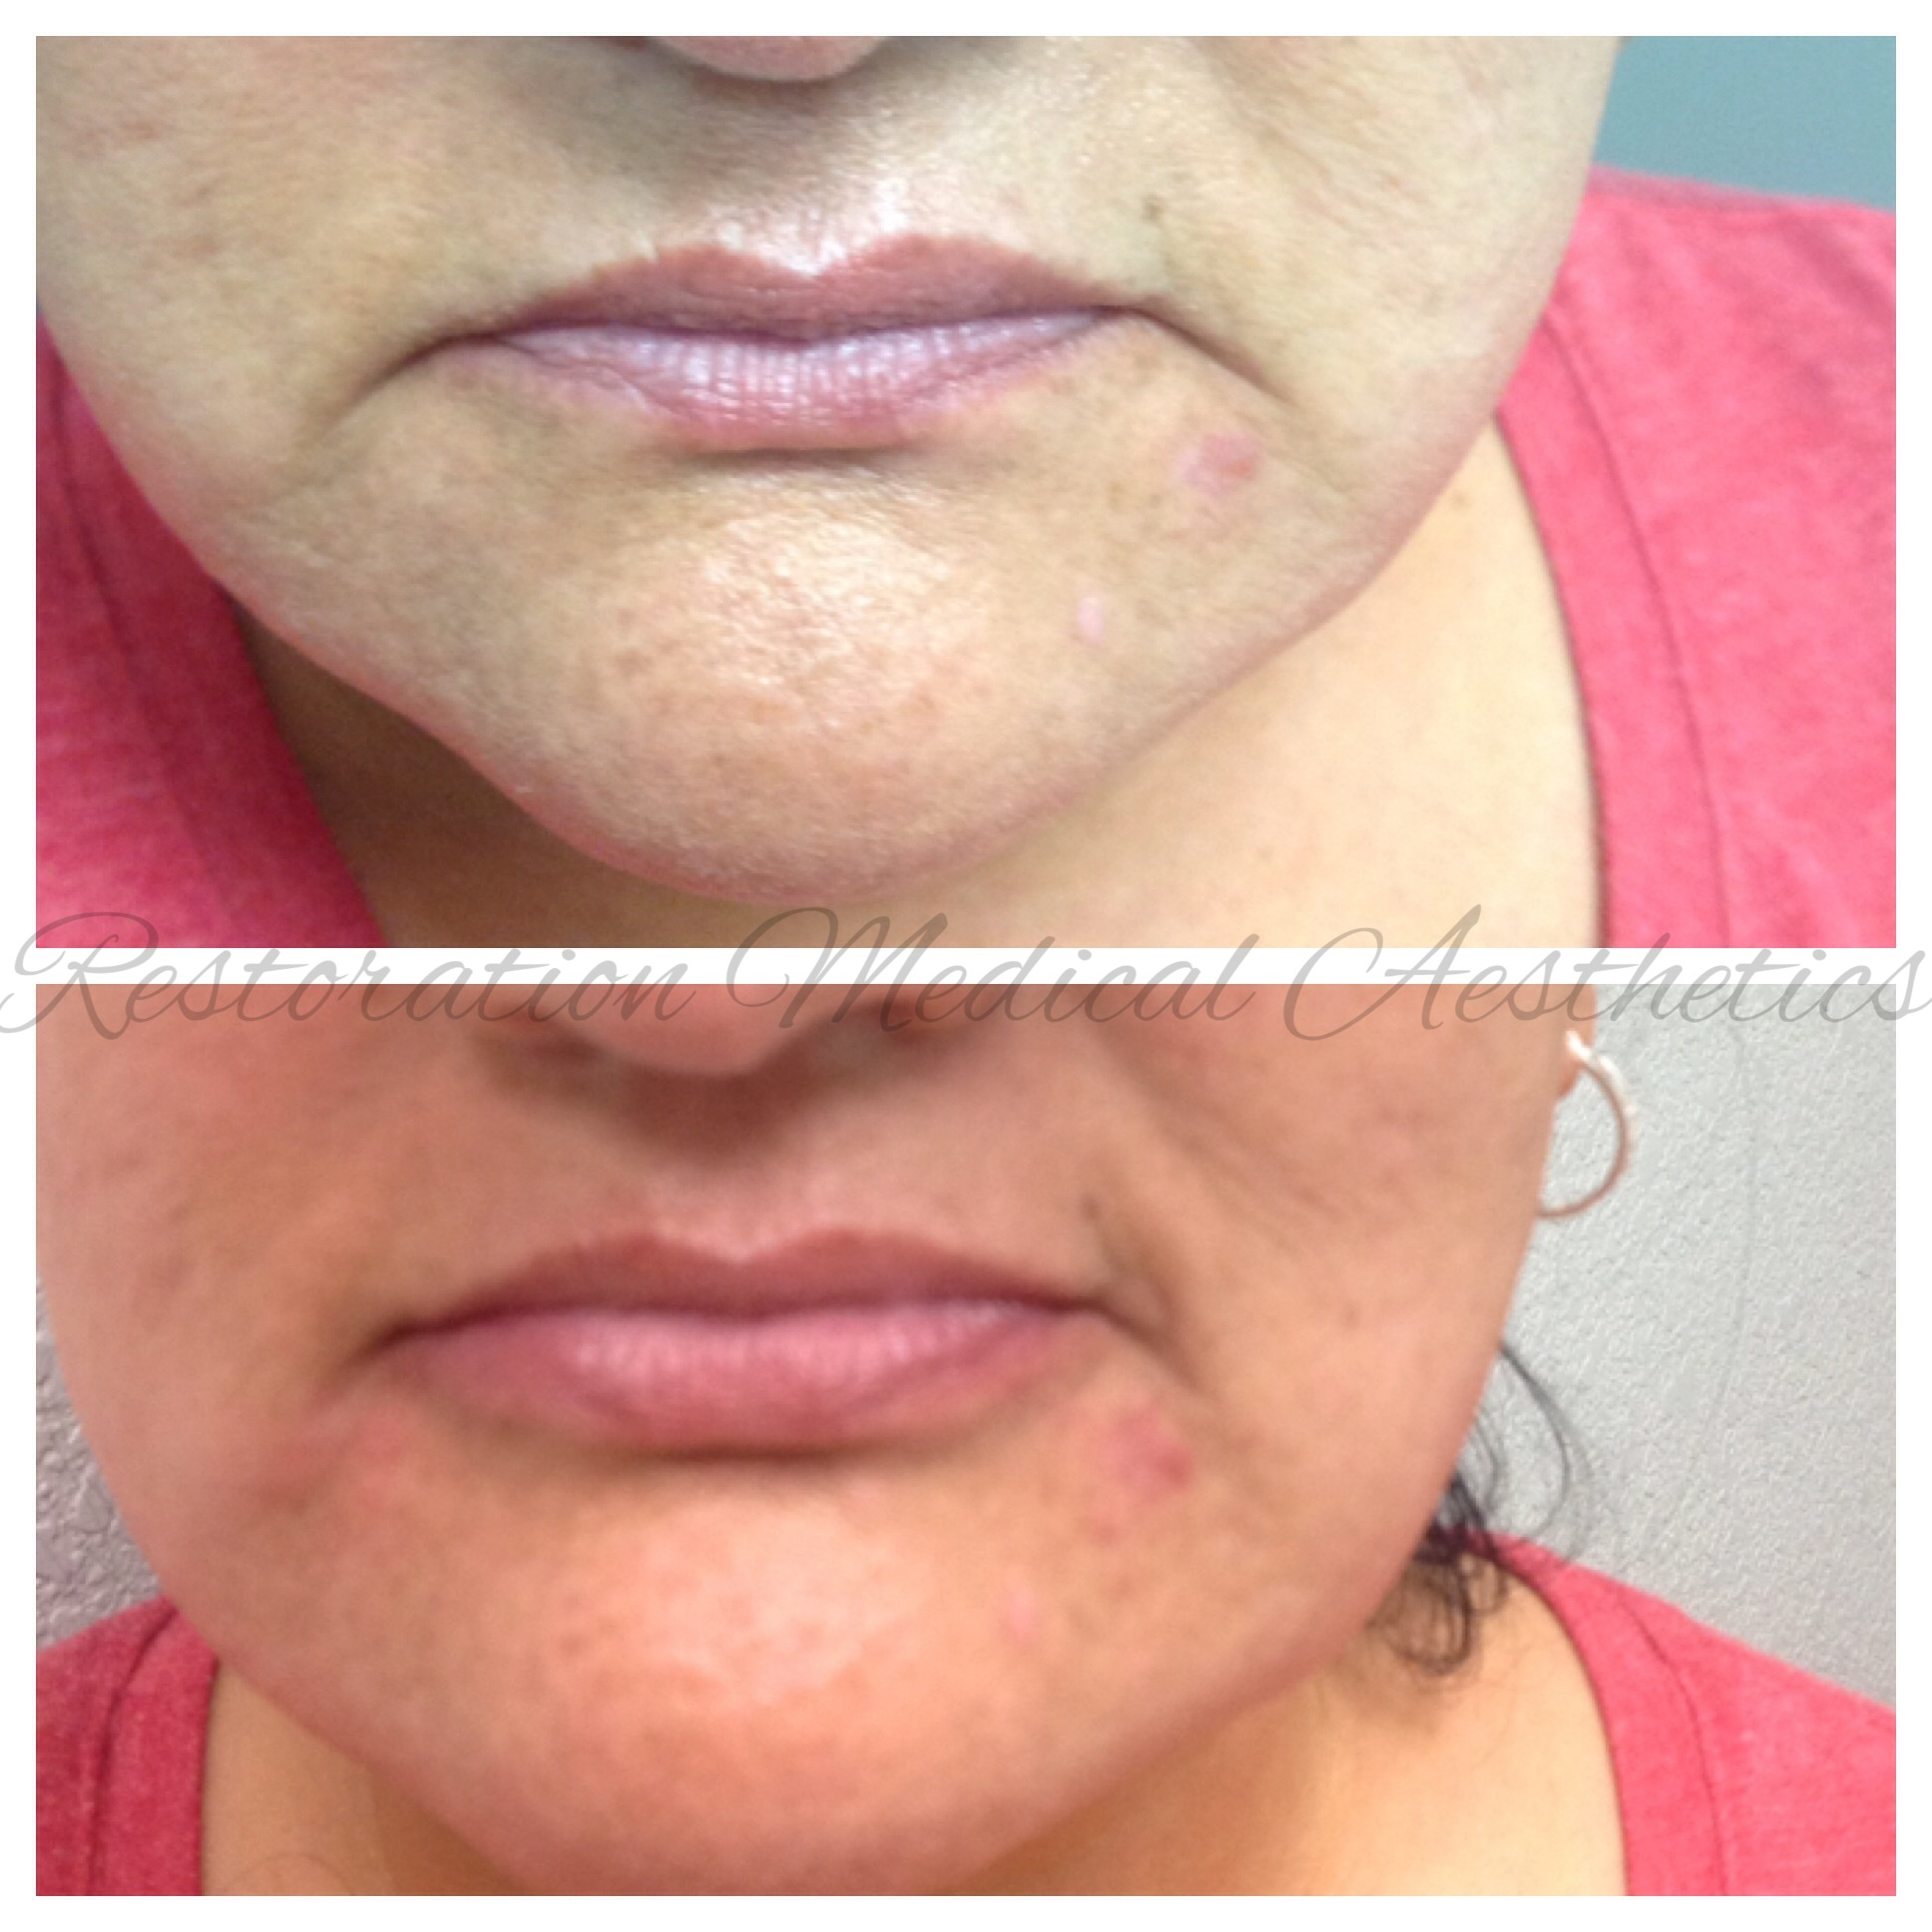 - BEFORE AND IMMEDIATELY AFTER FILLER IN CORNERS OF MOUTH